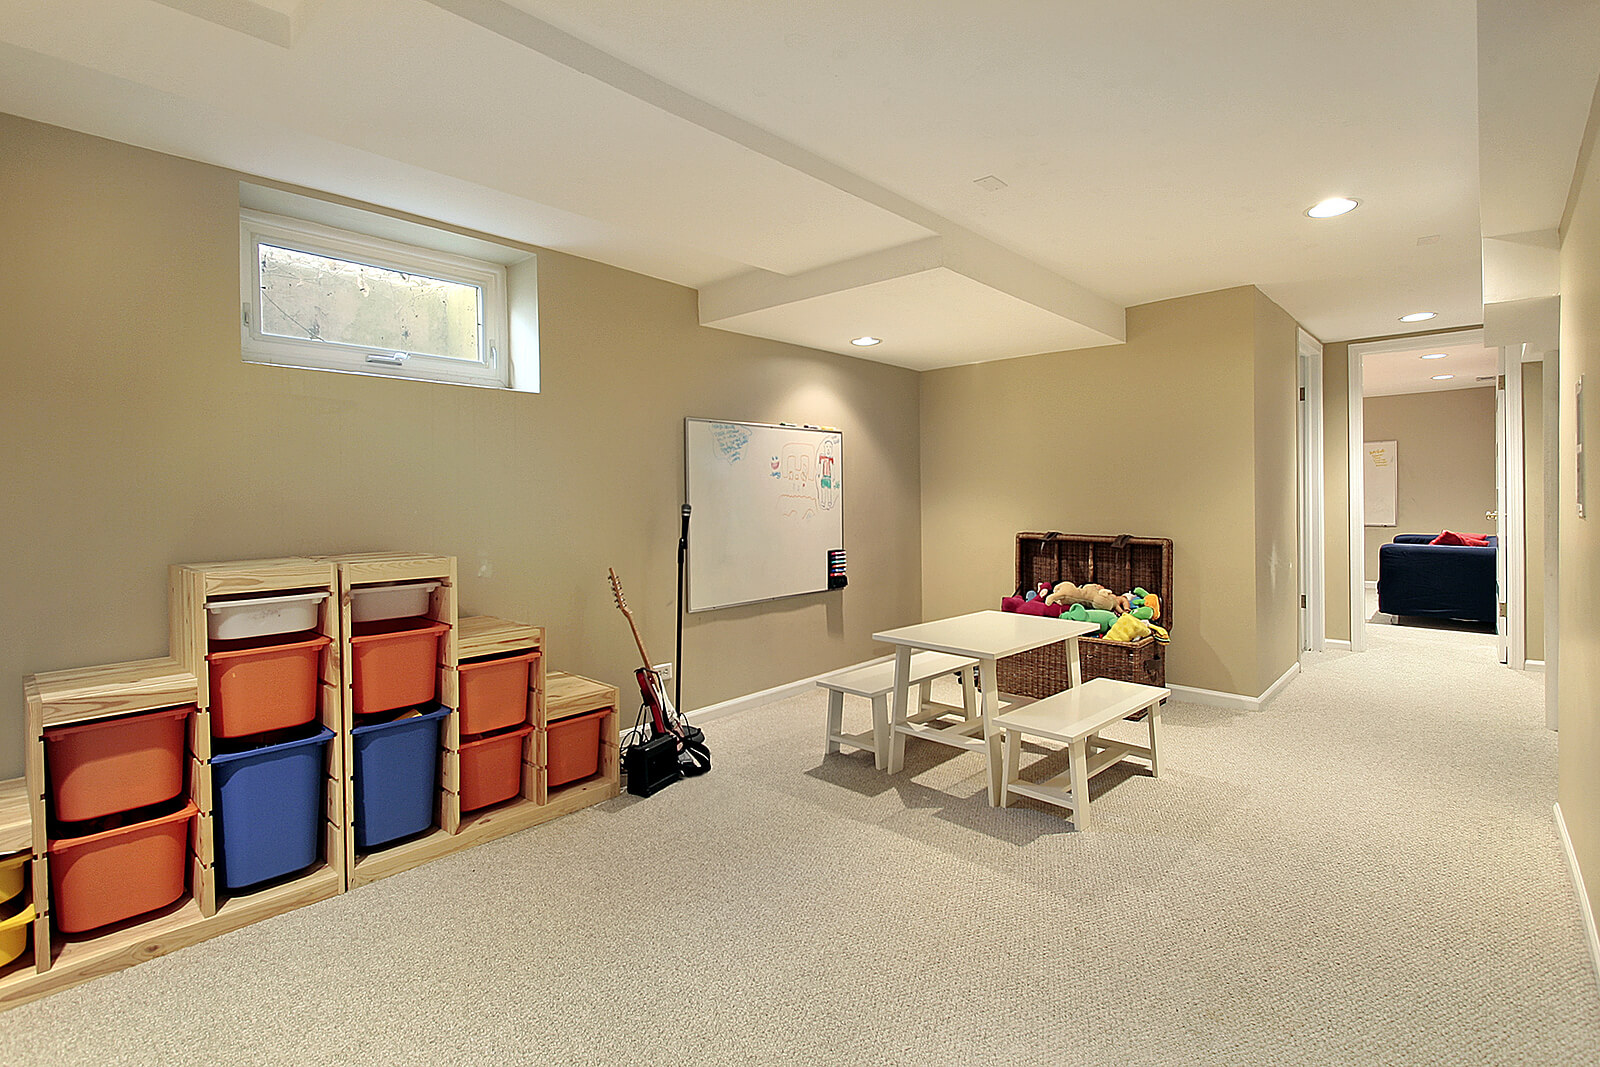 Painting Tips To Make Low Basement Ceiling Ideas Look Higher